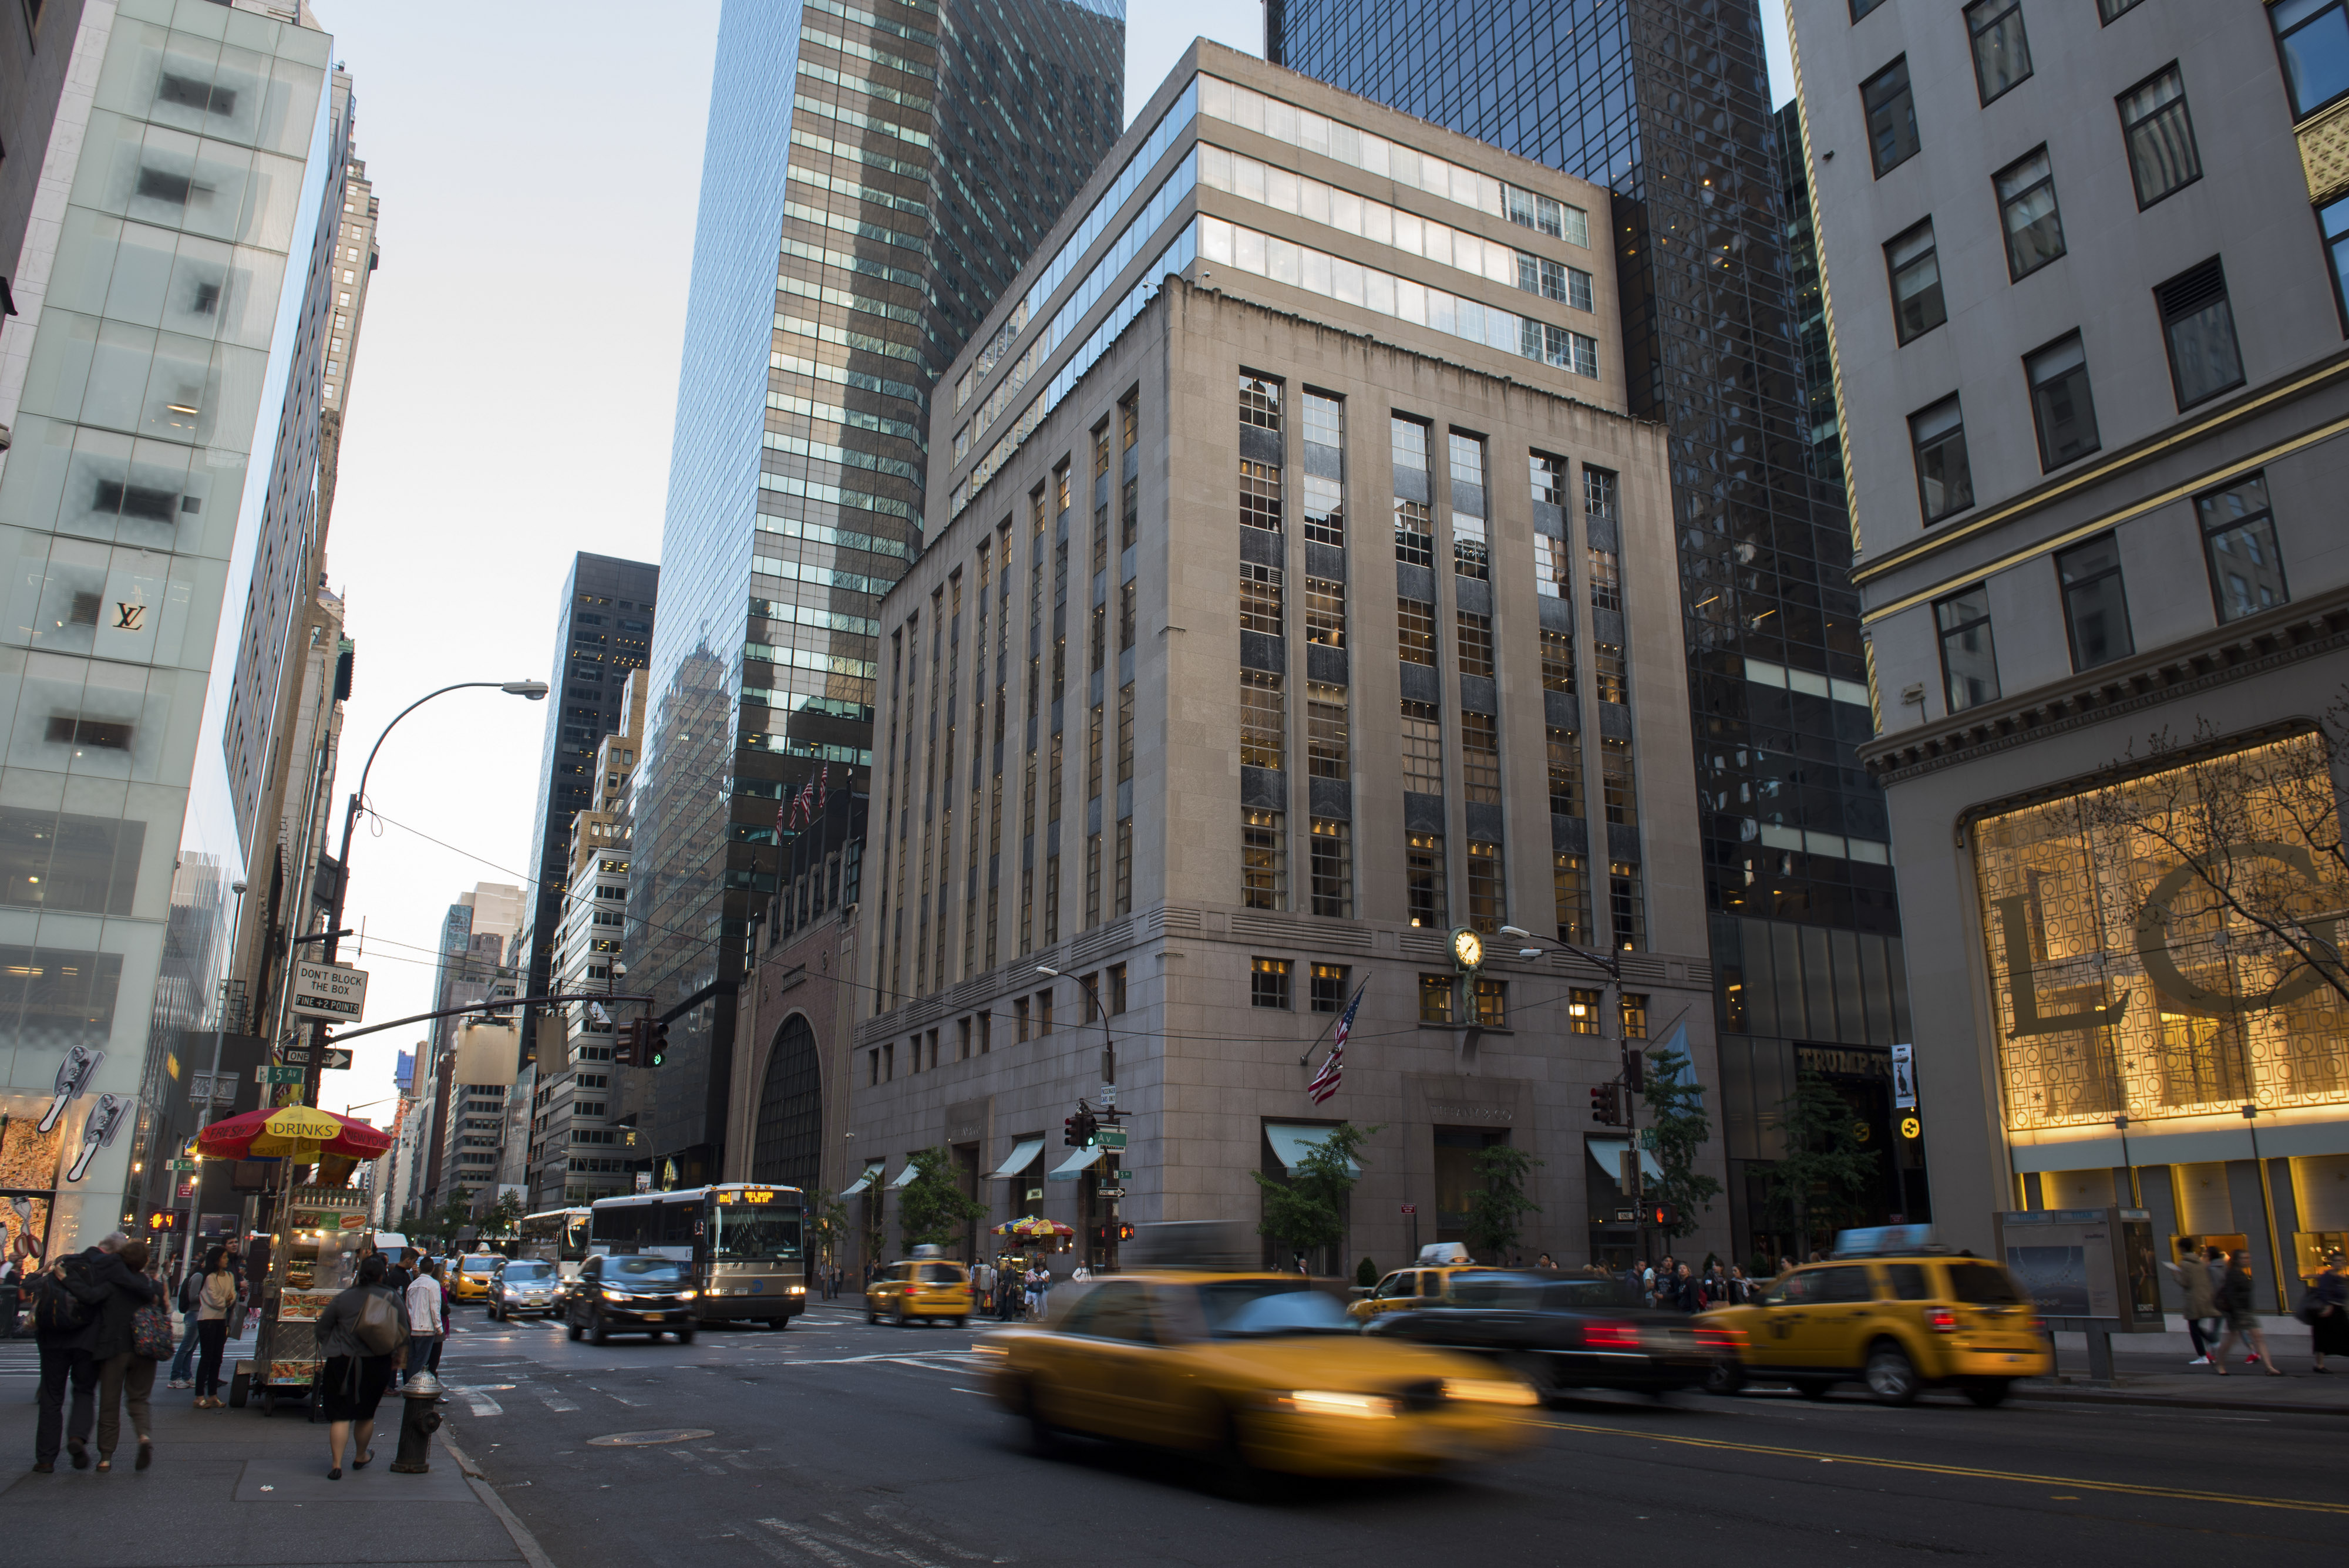 A Tiffany & Co. Store Ahead Of Earnings Figures